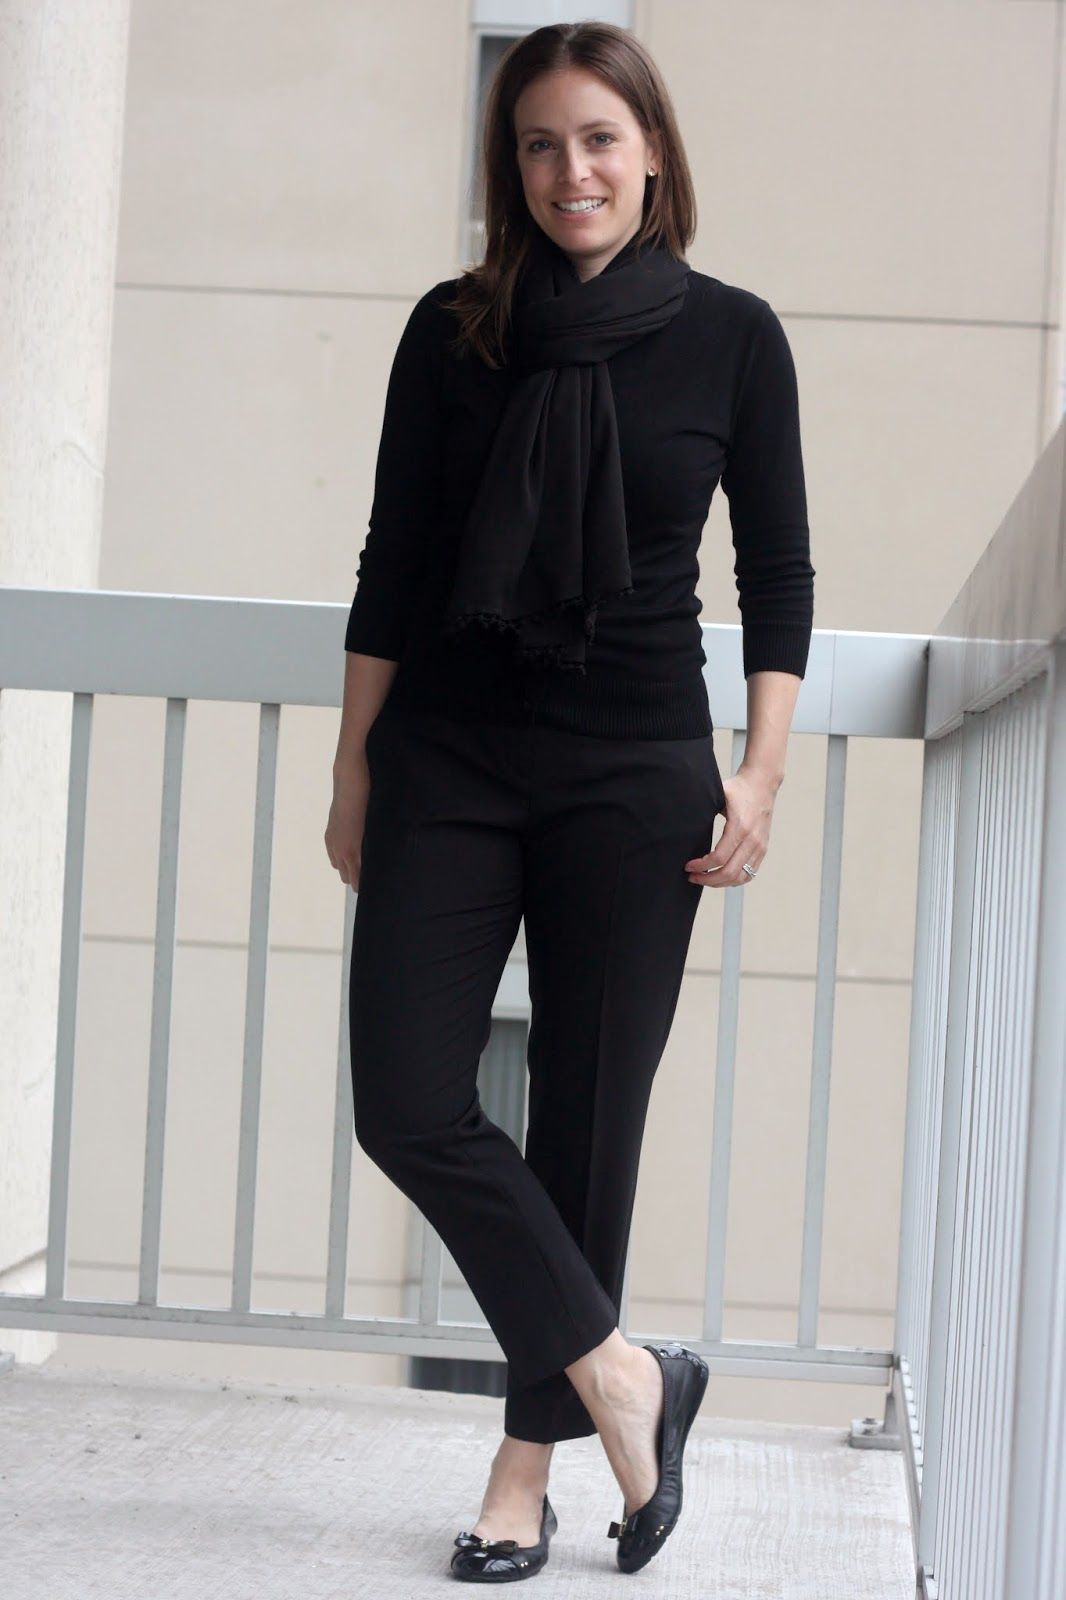 Image result for black cardigan outfits | Work Clothes | Pinterest ...